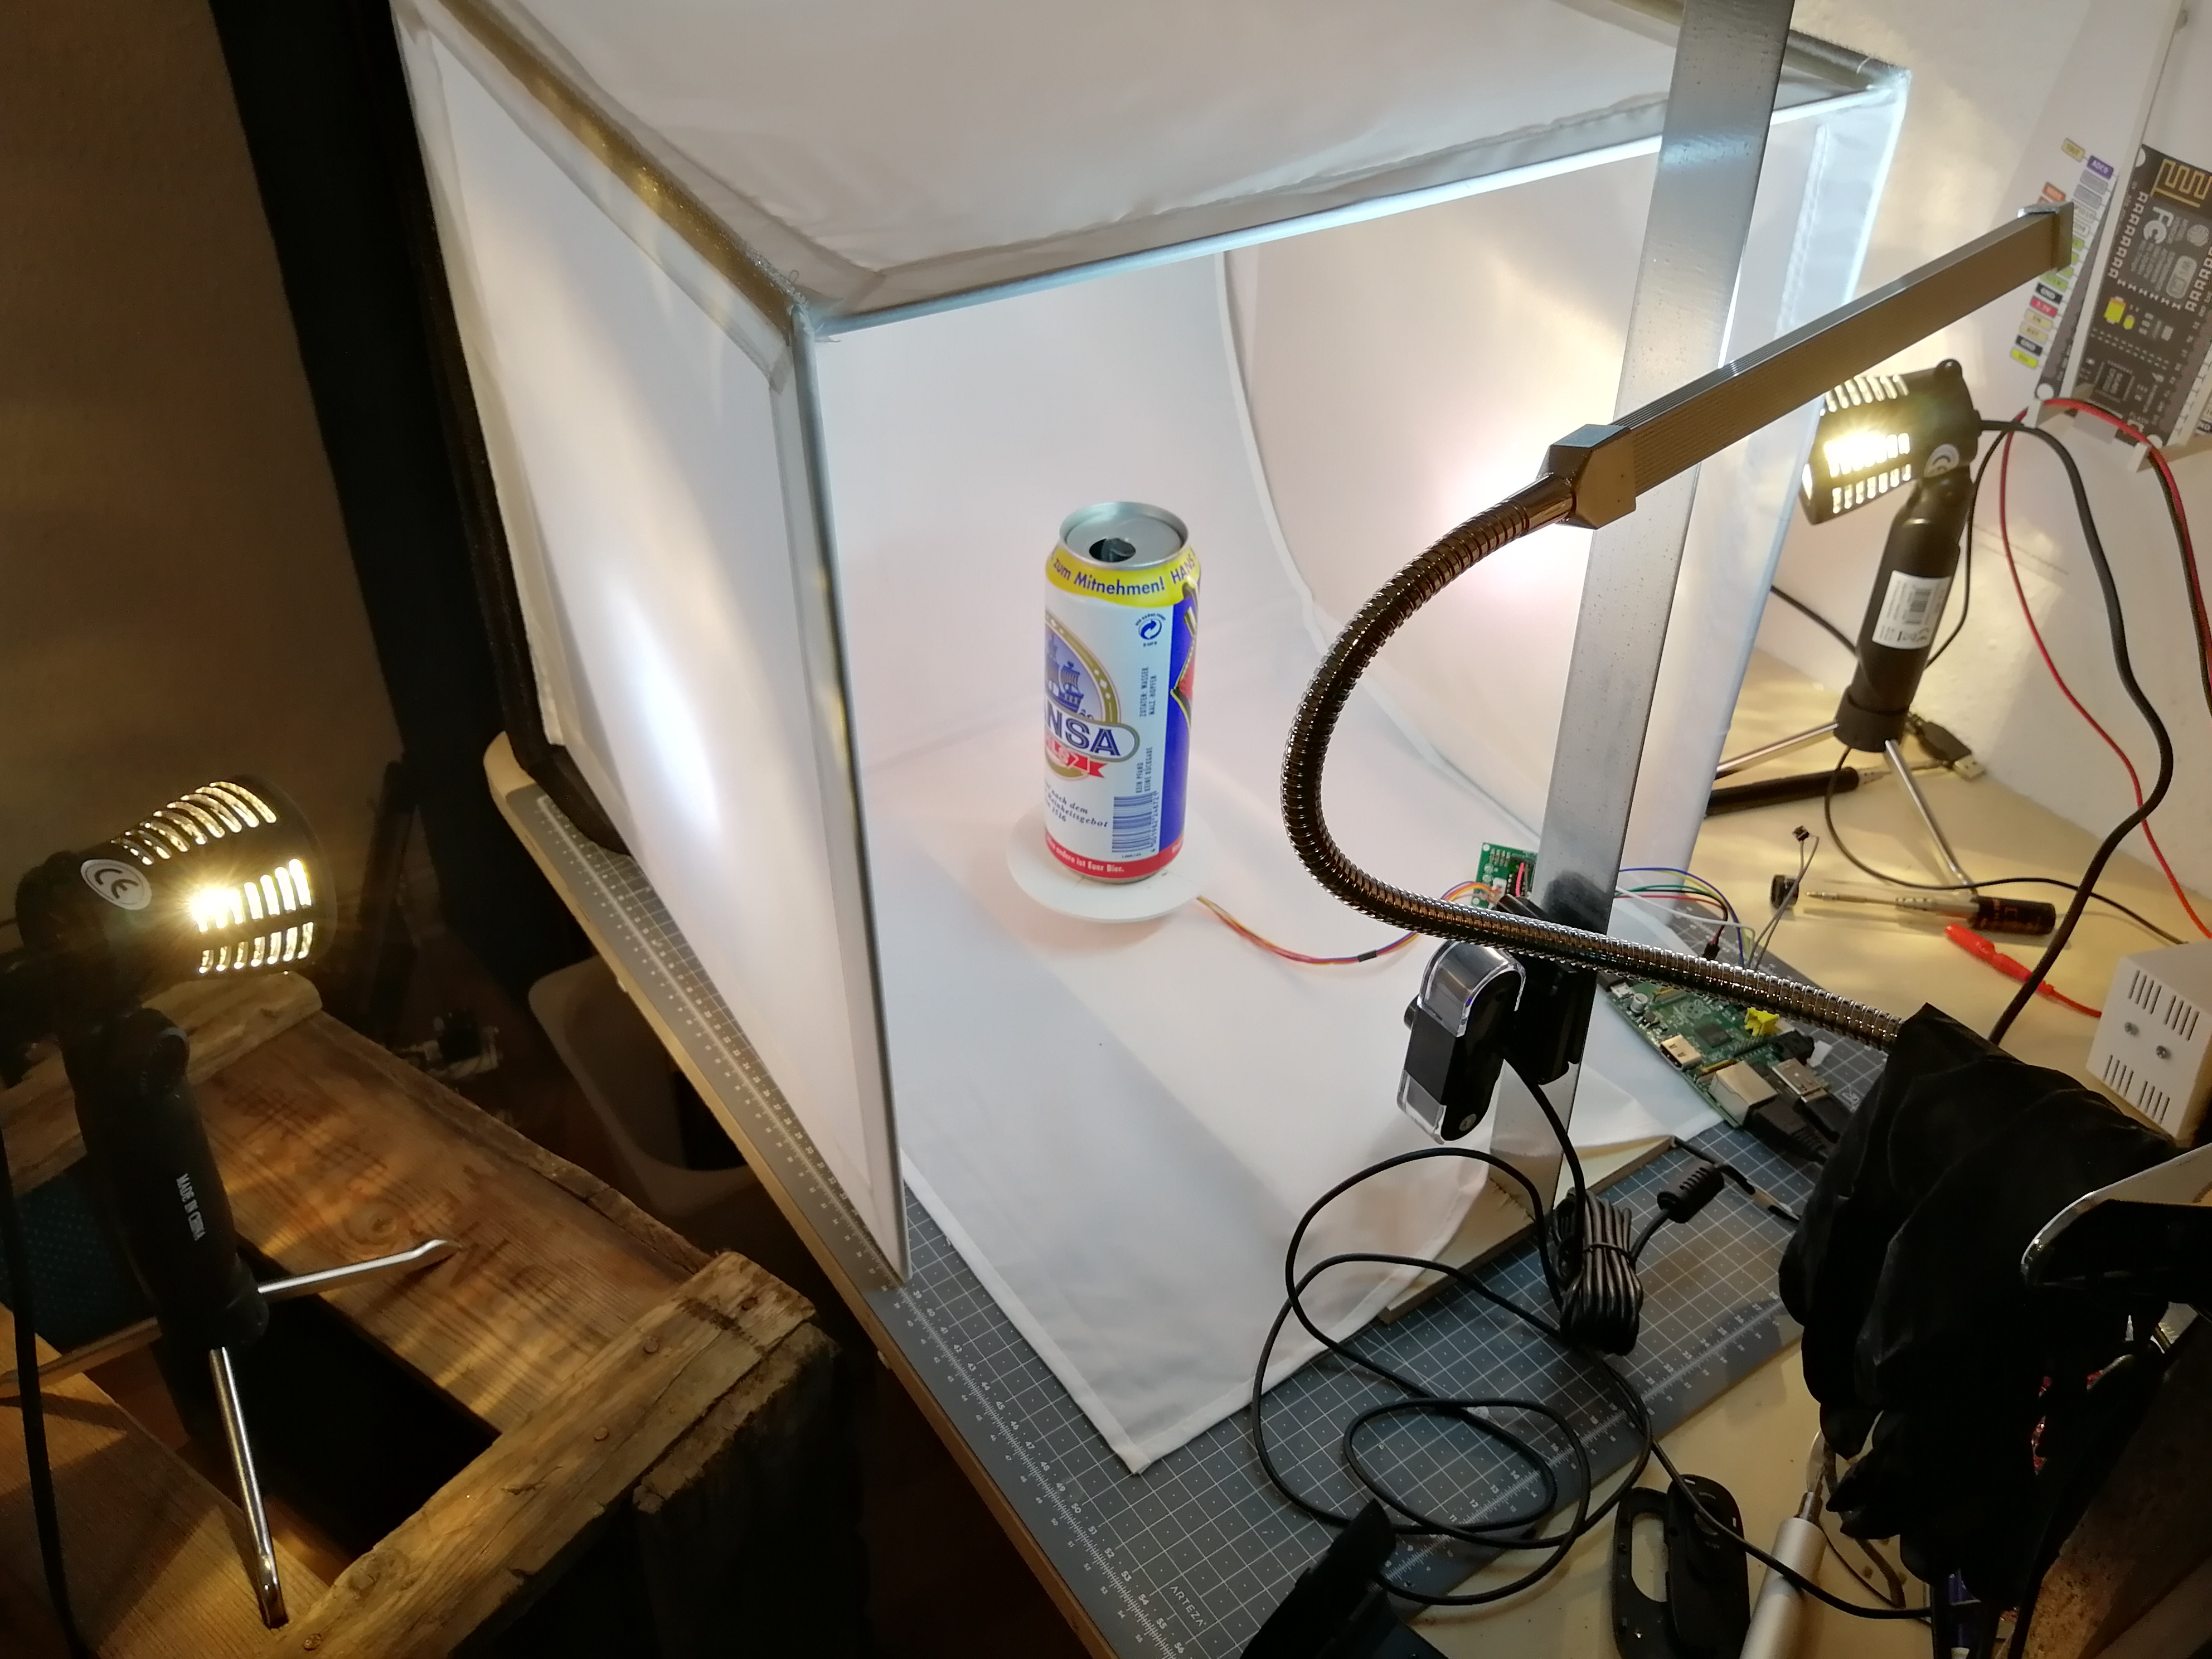 My improvised photo studio